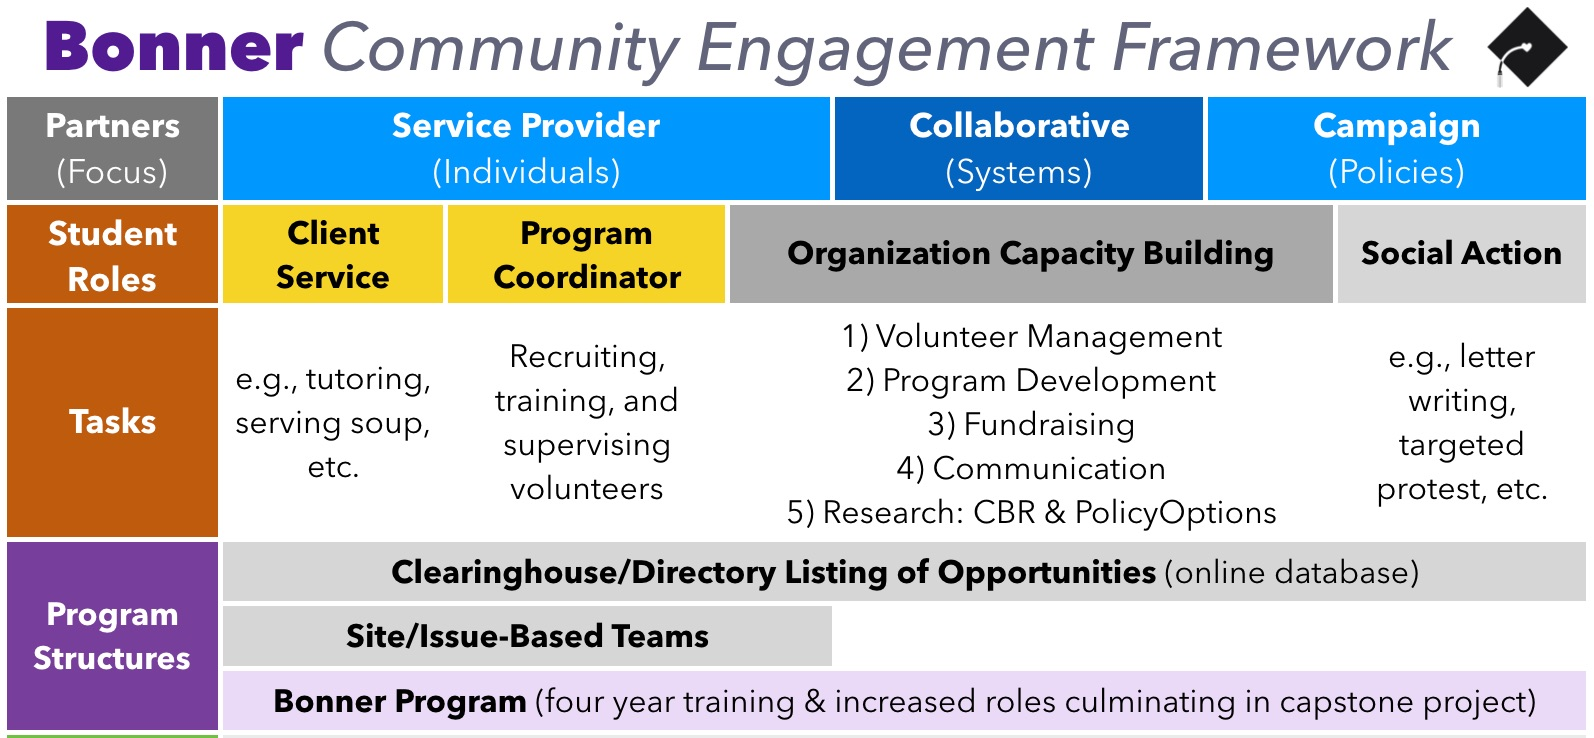 Direct (client) service is the backbone of most campus community engagement, and is usually coordinating by students in site- or issue-based teams. Click to enlarge.